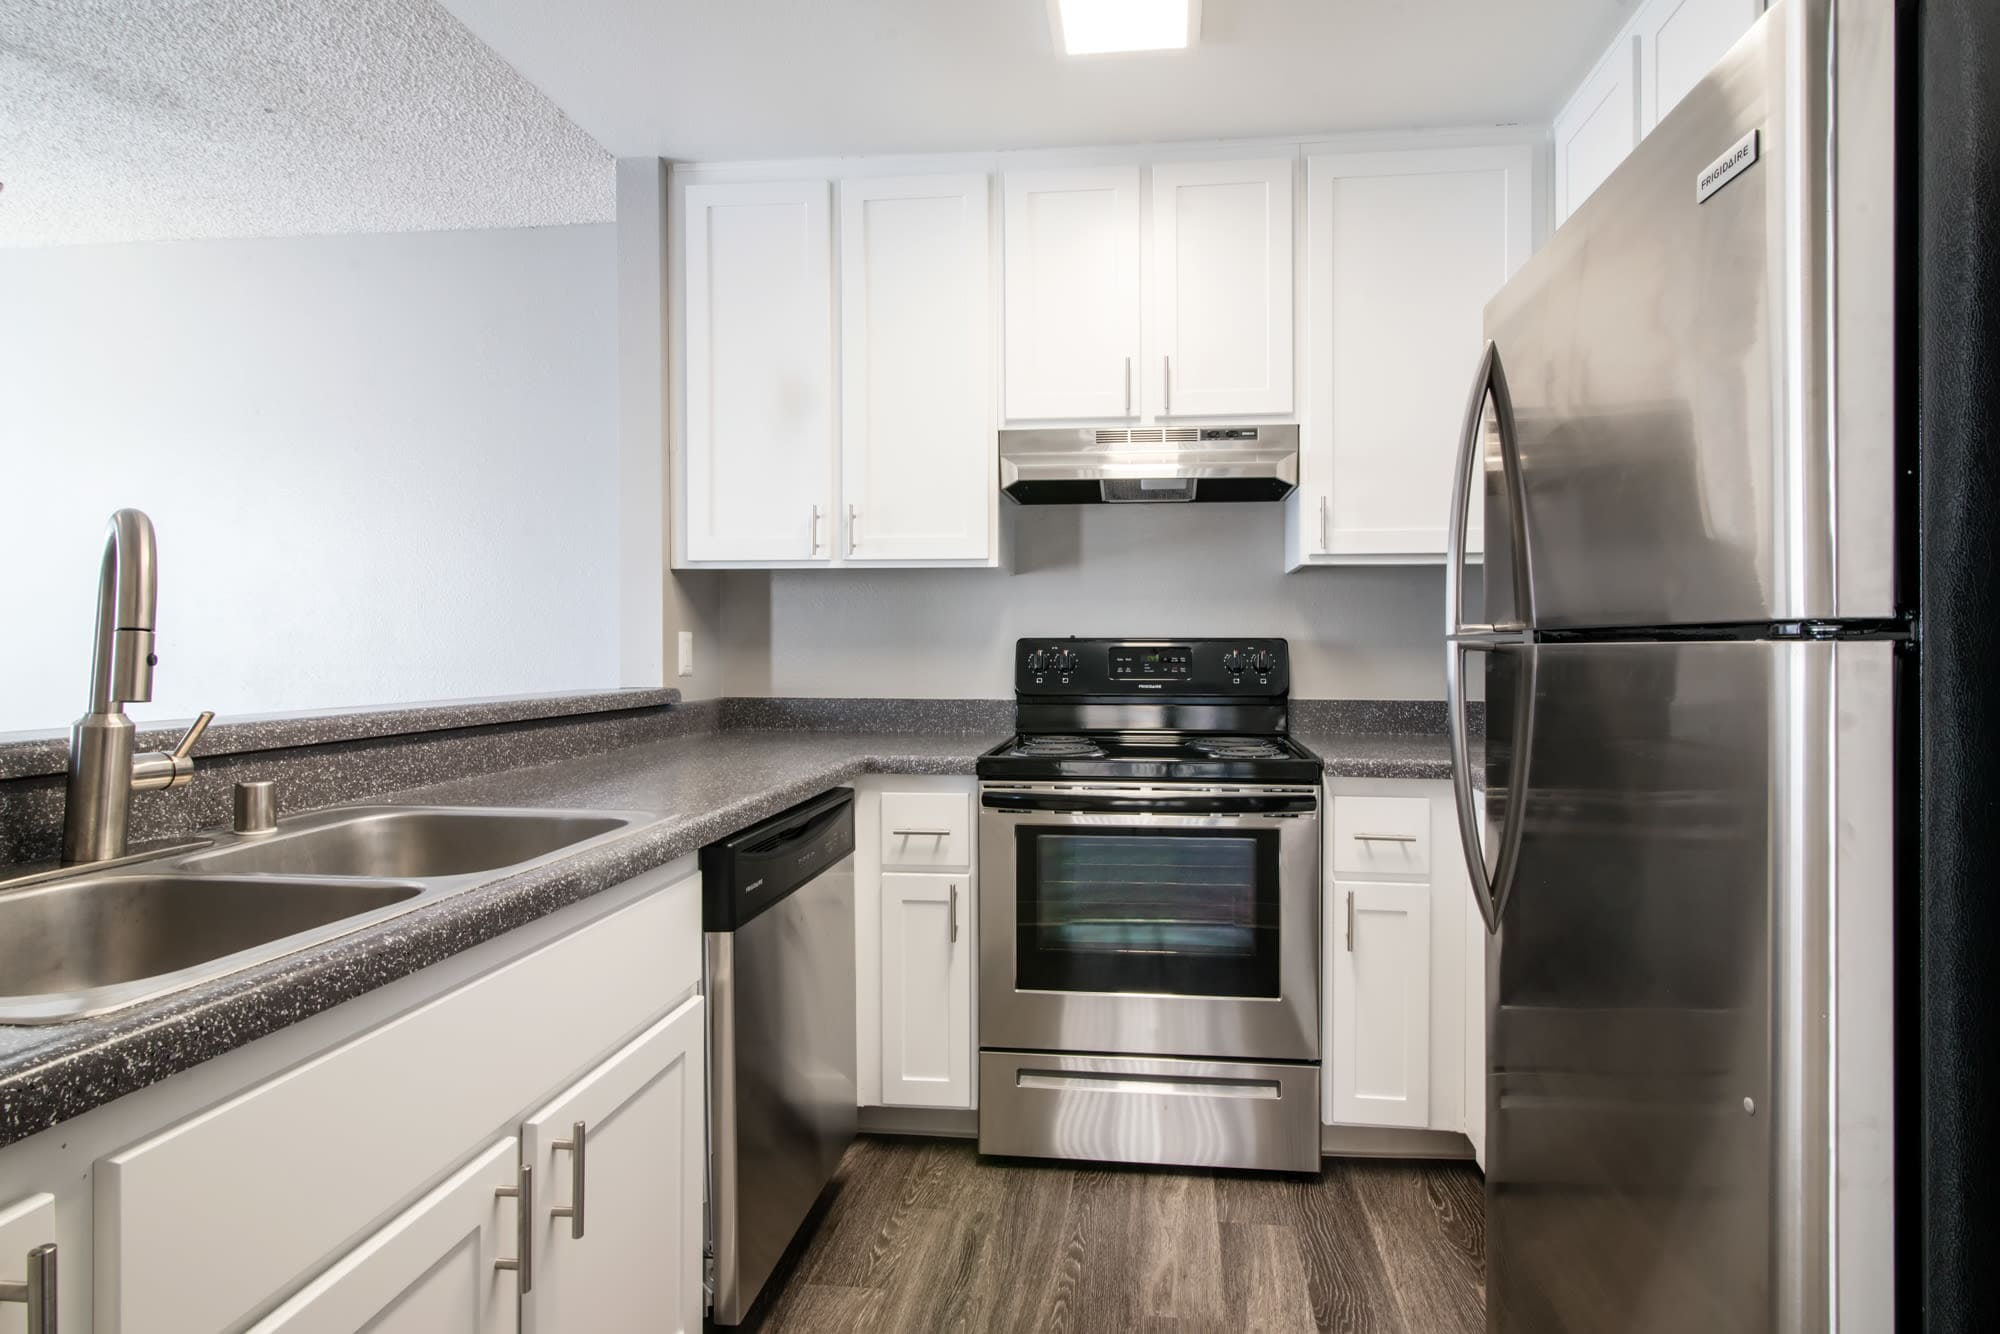 White renovated kitchen cabinetry with stainless steel appliances